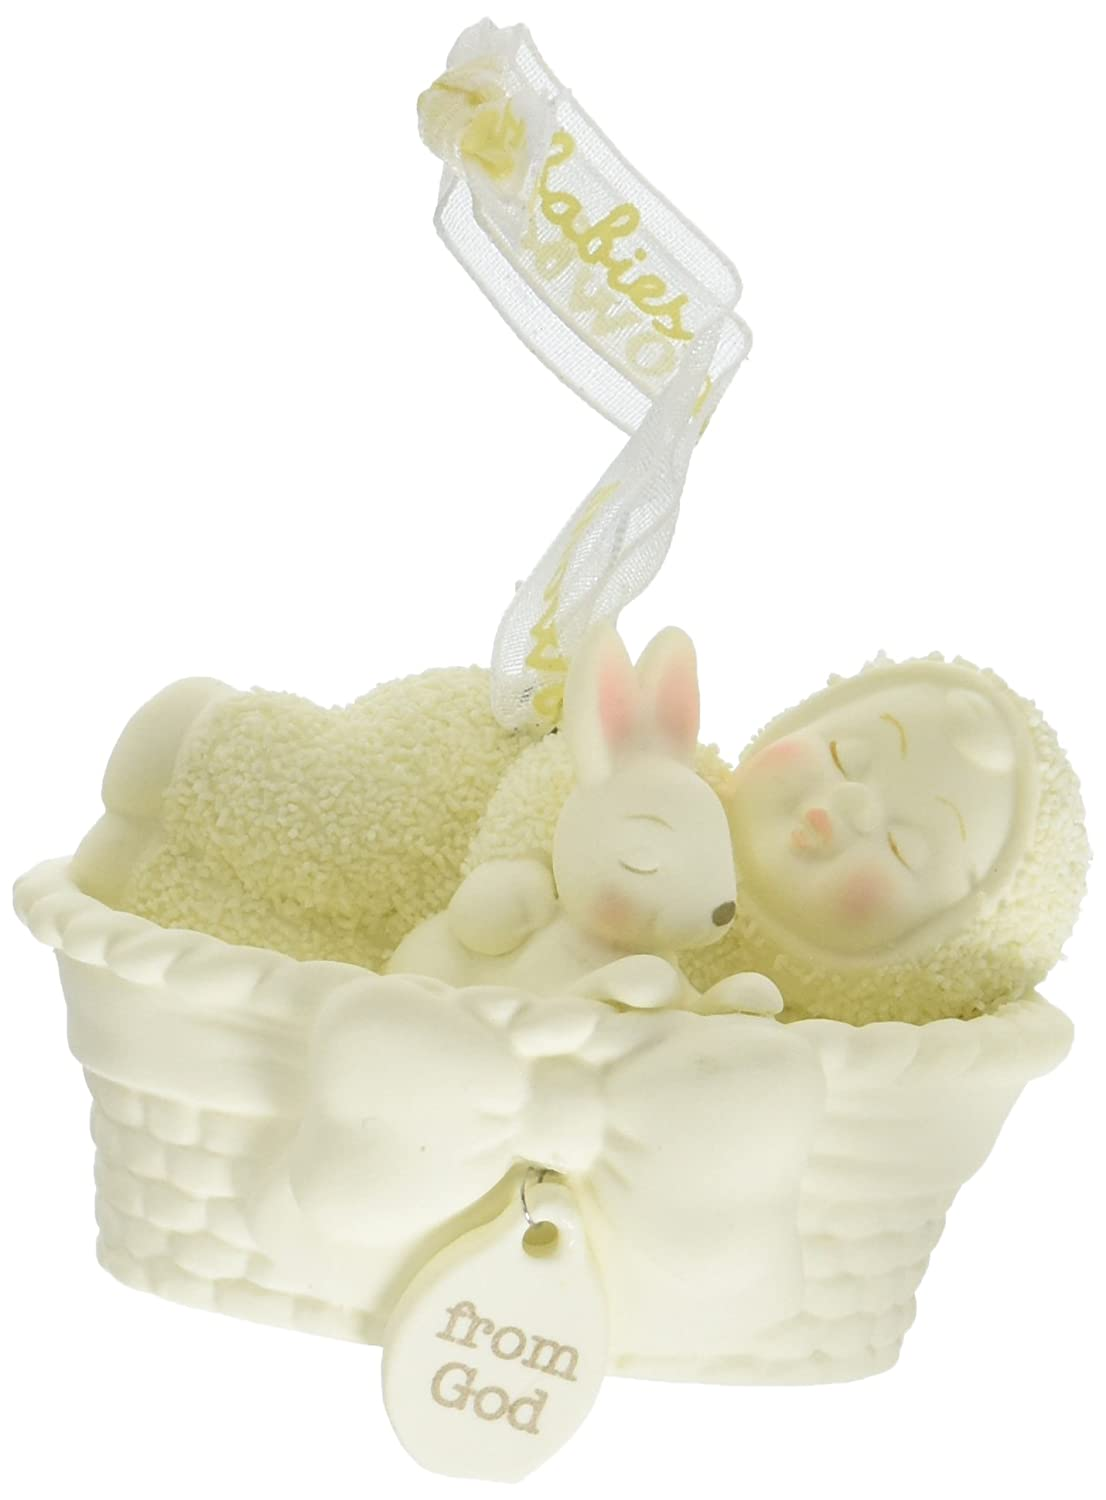 From God Baby Ornament